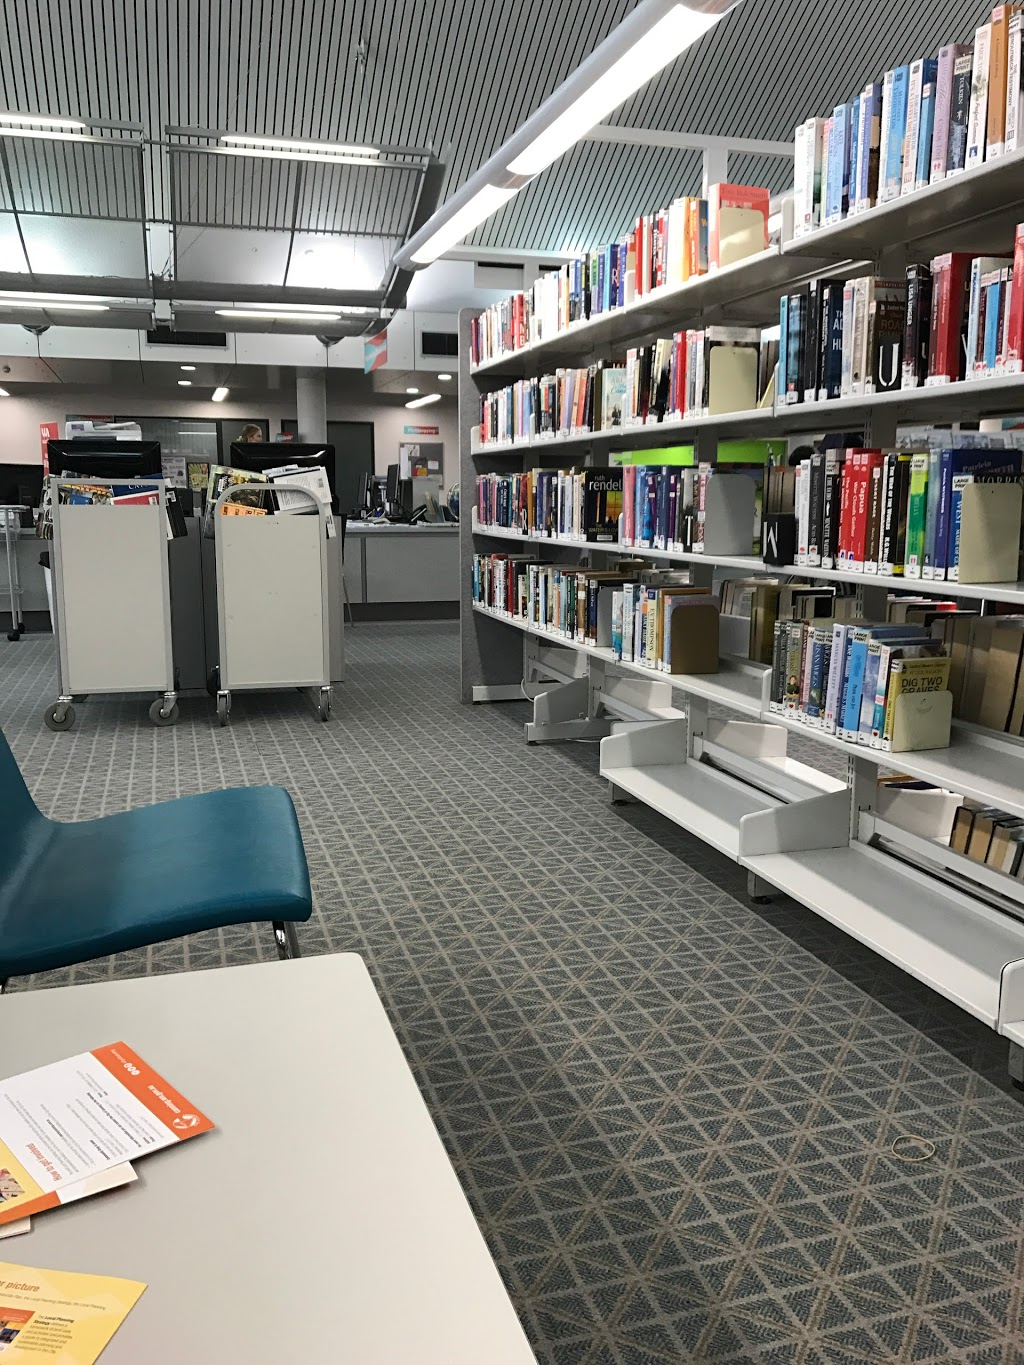 Riverton Library | library | 67 Riley Rd, Riverton WA 6148, Australia | 0892310944 OR +61 8 9231 0944